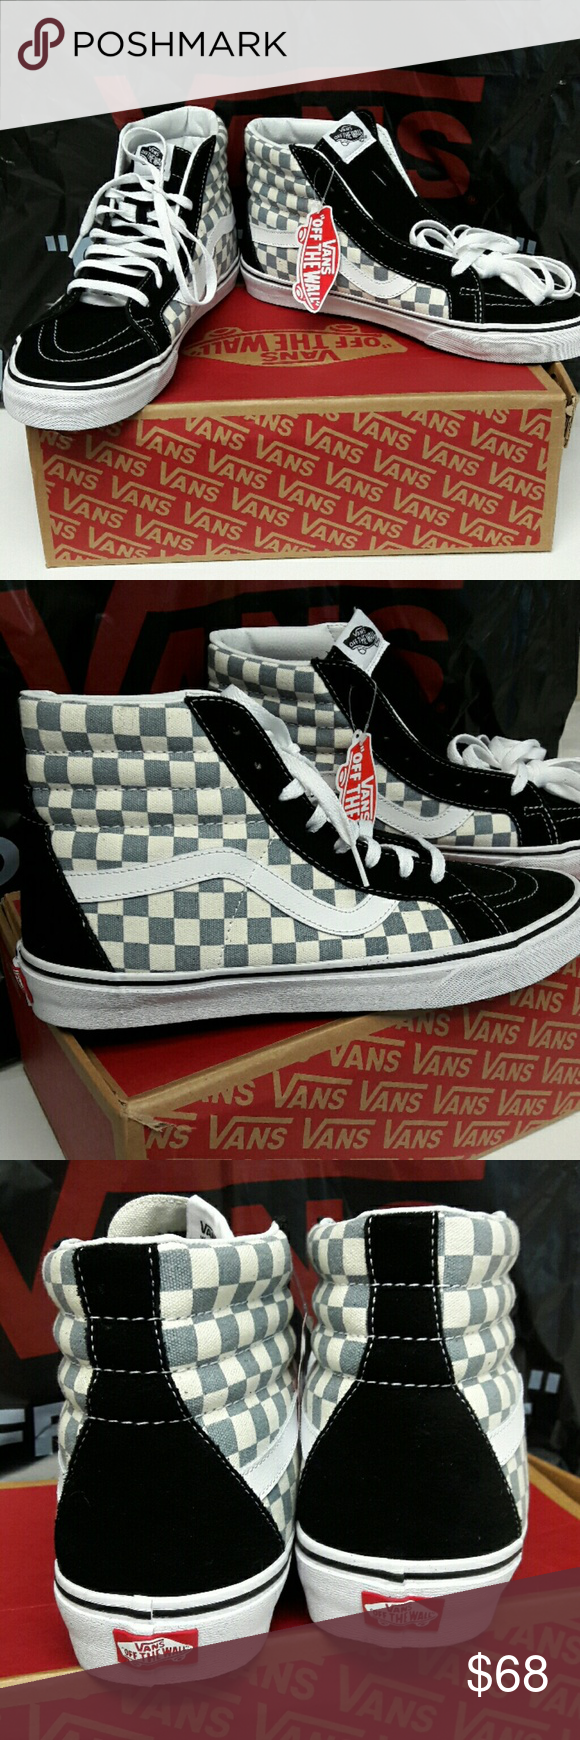 VANS SK8Hi Reissue Checkerboard Blk Citadel Brand New with Tags and Box!  Mens Vans Size 11 - black suede c858fe98fc599